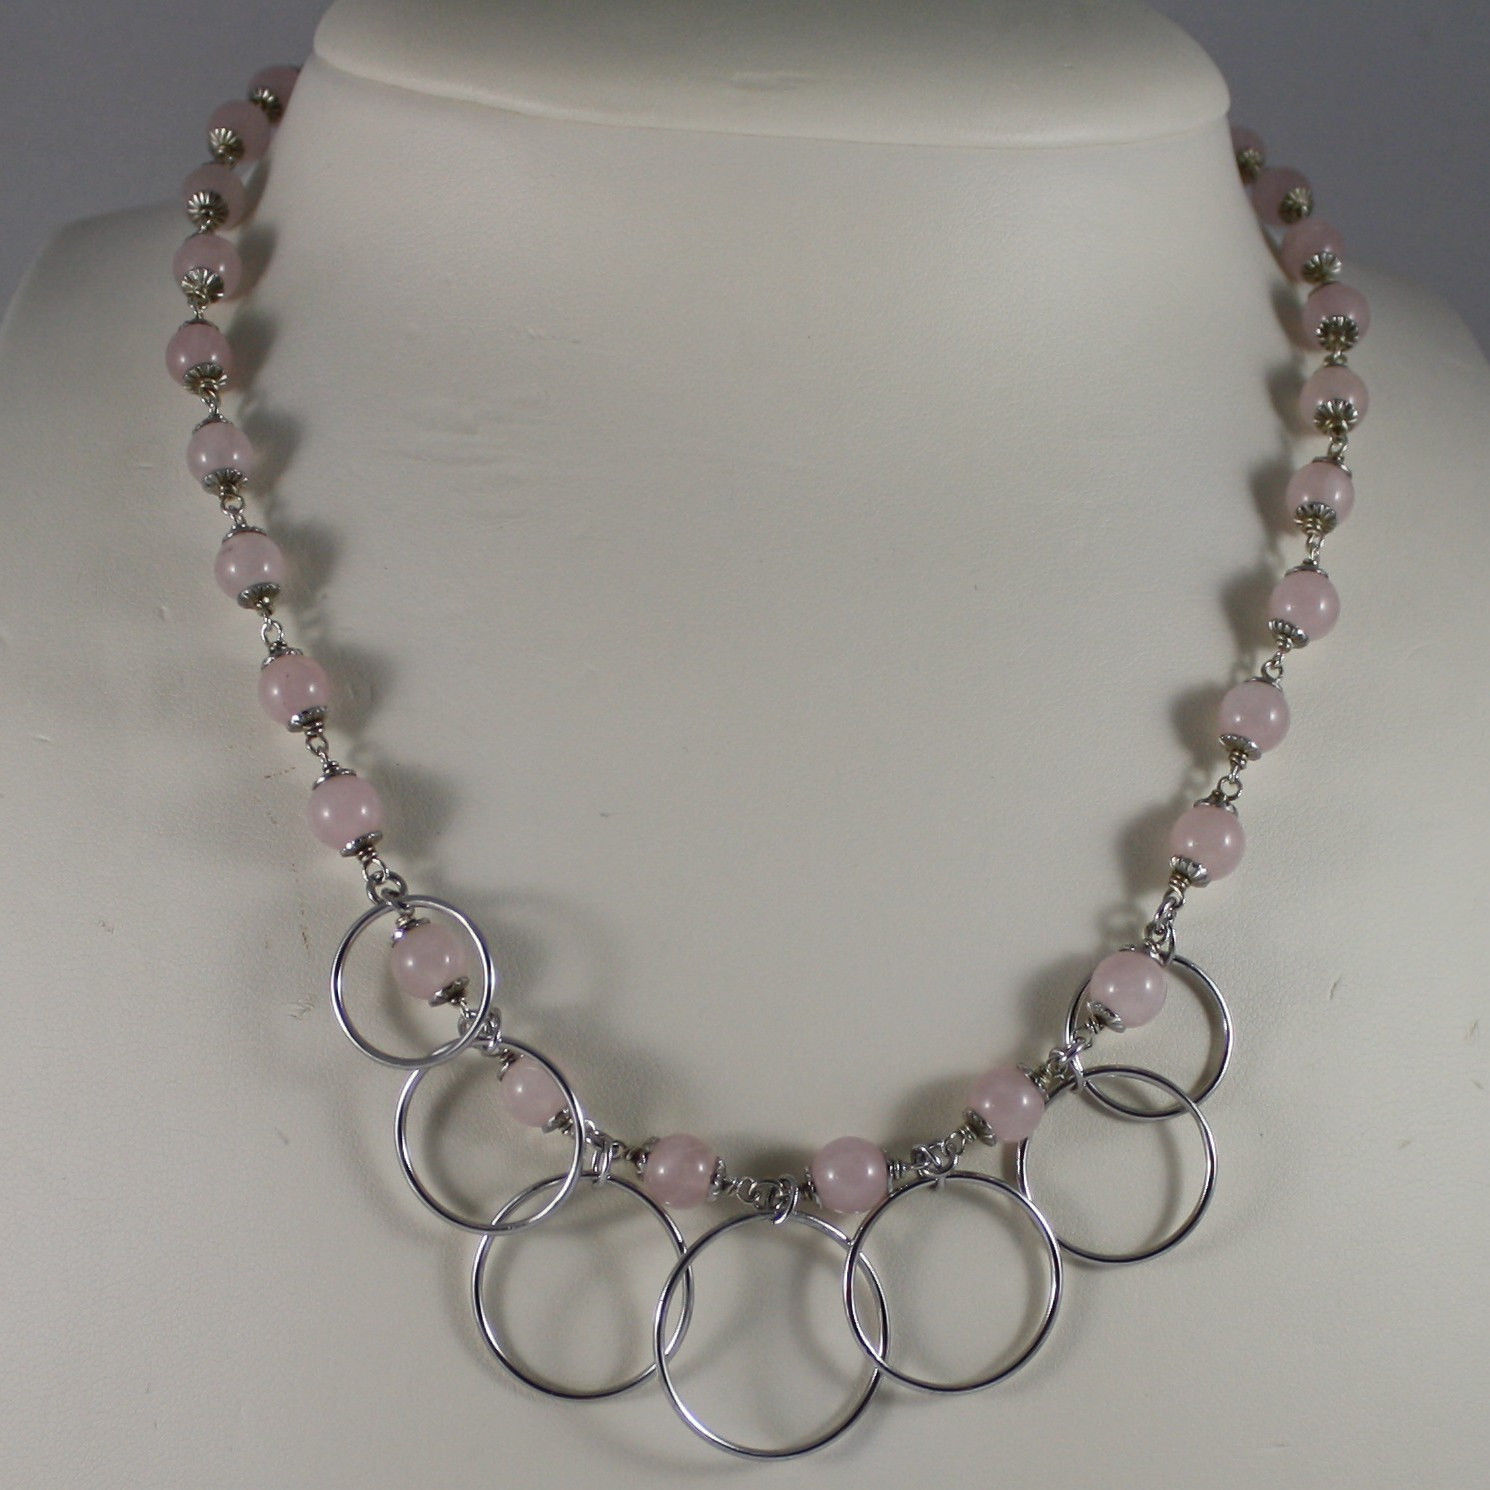 .925 SILVER RHODIUM NECKLACE WITH PINK QUARTZ AND SILVER CIRCLES PENDANT